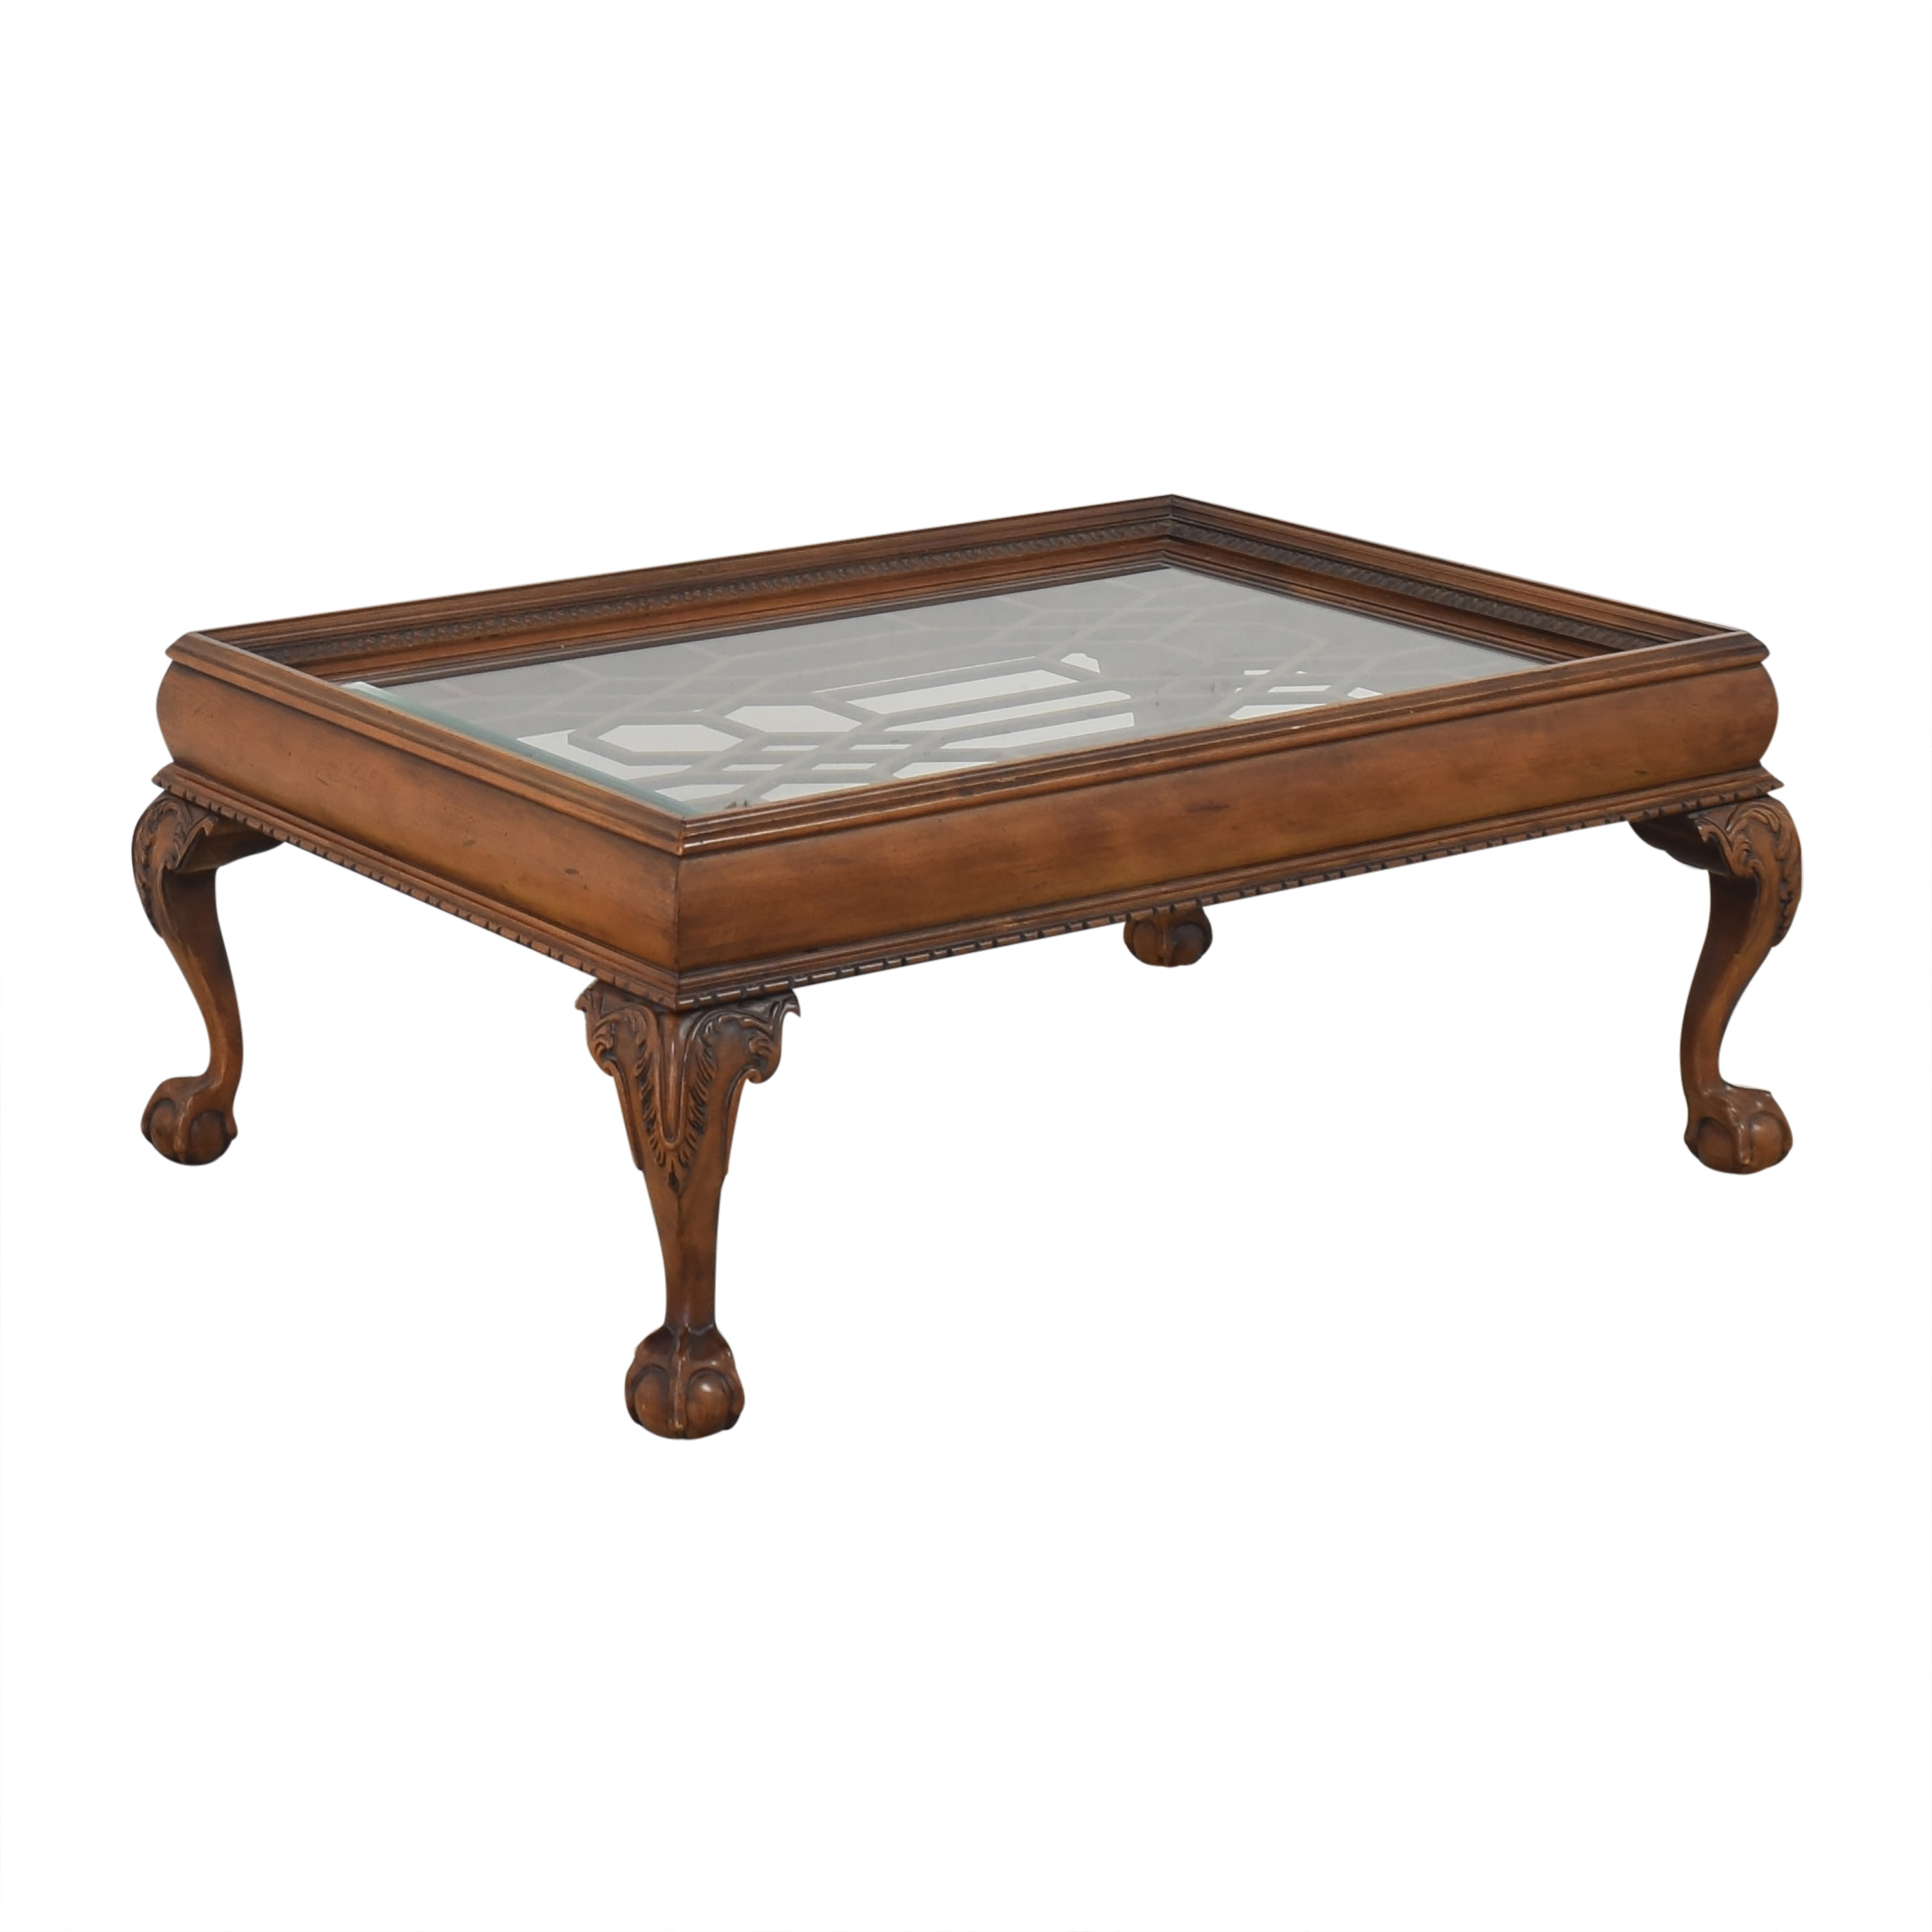 shop Century Furniture Century Furniture Ball and Claw Coffee Table online